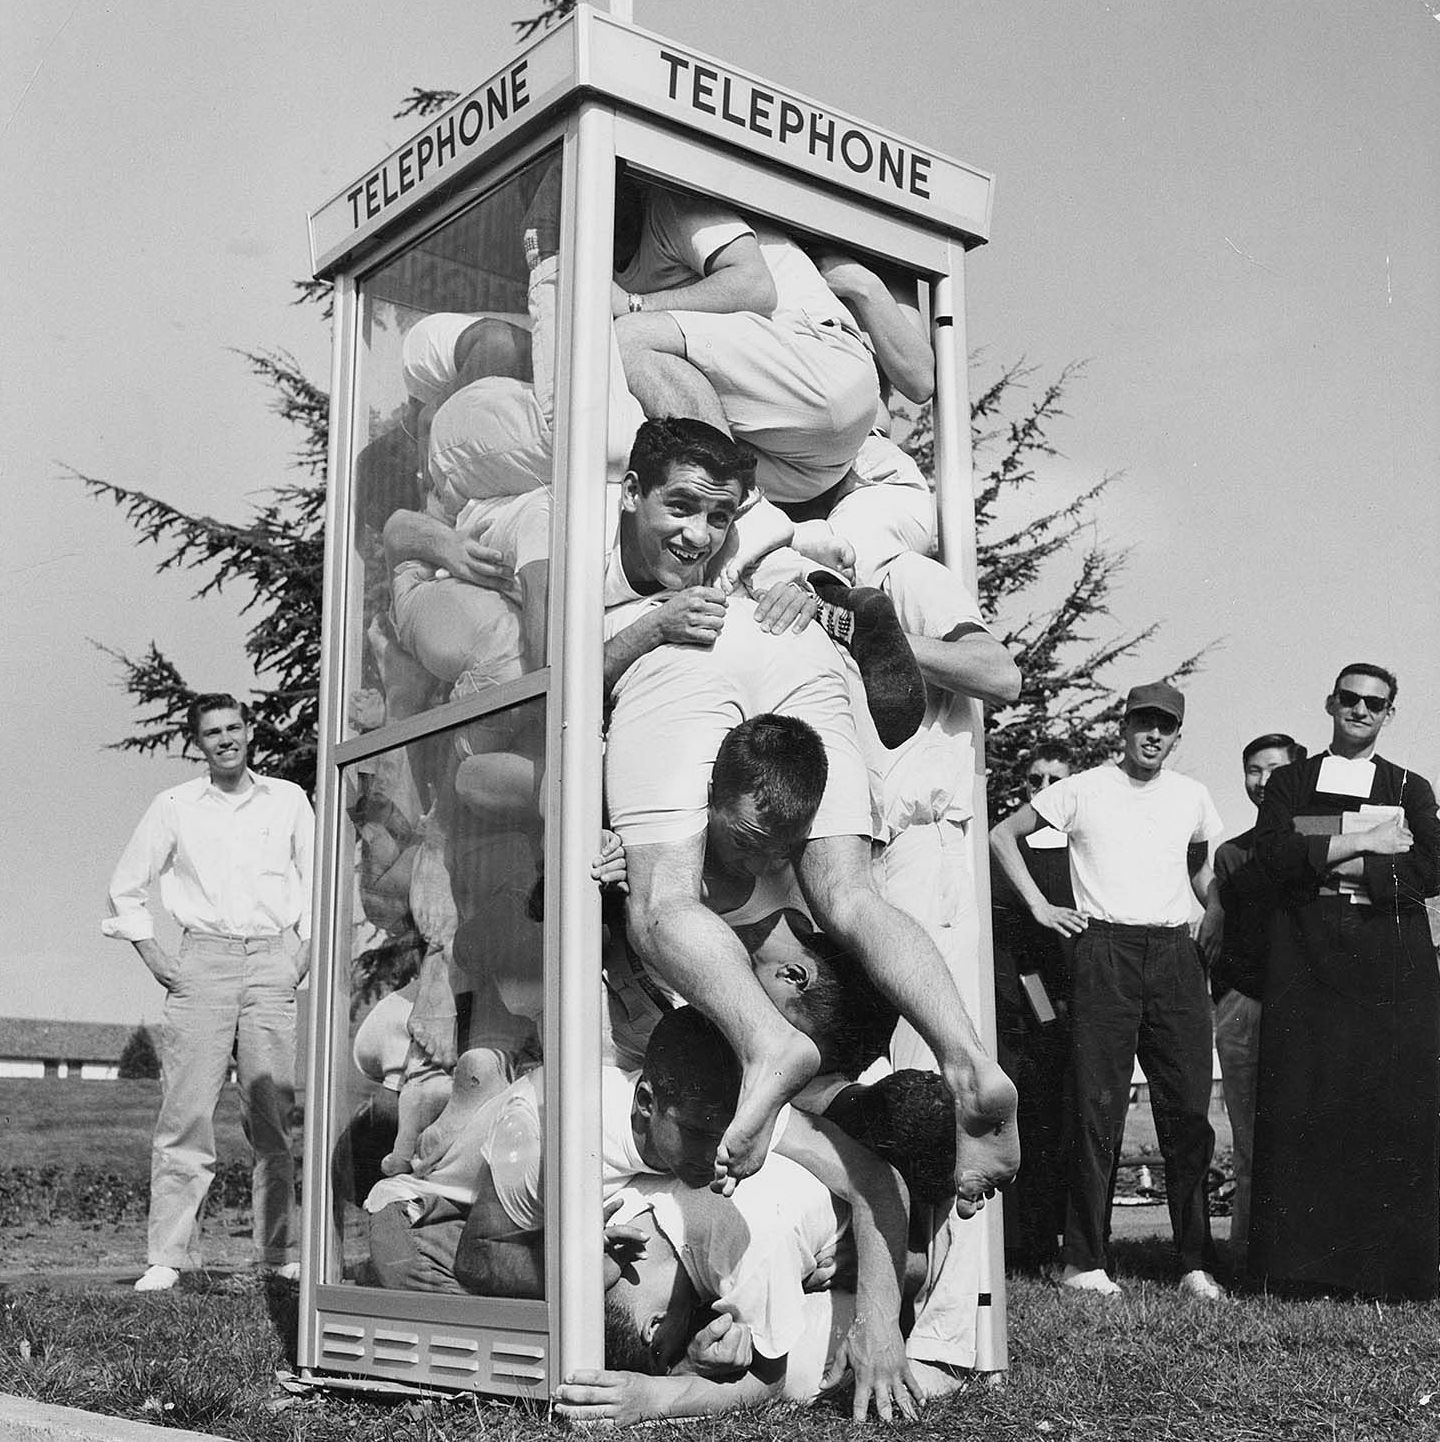 One of the Wild Fads of the 1950s Was Telephone Booth Stuffing